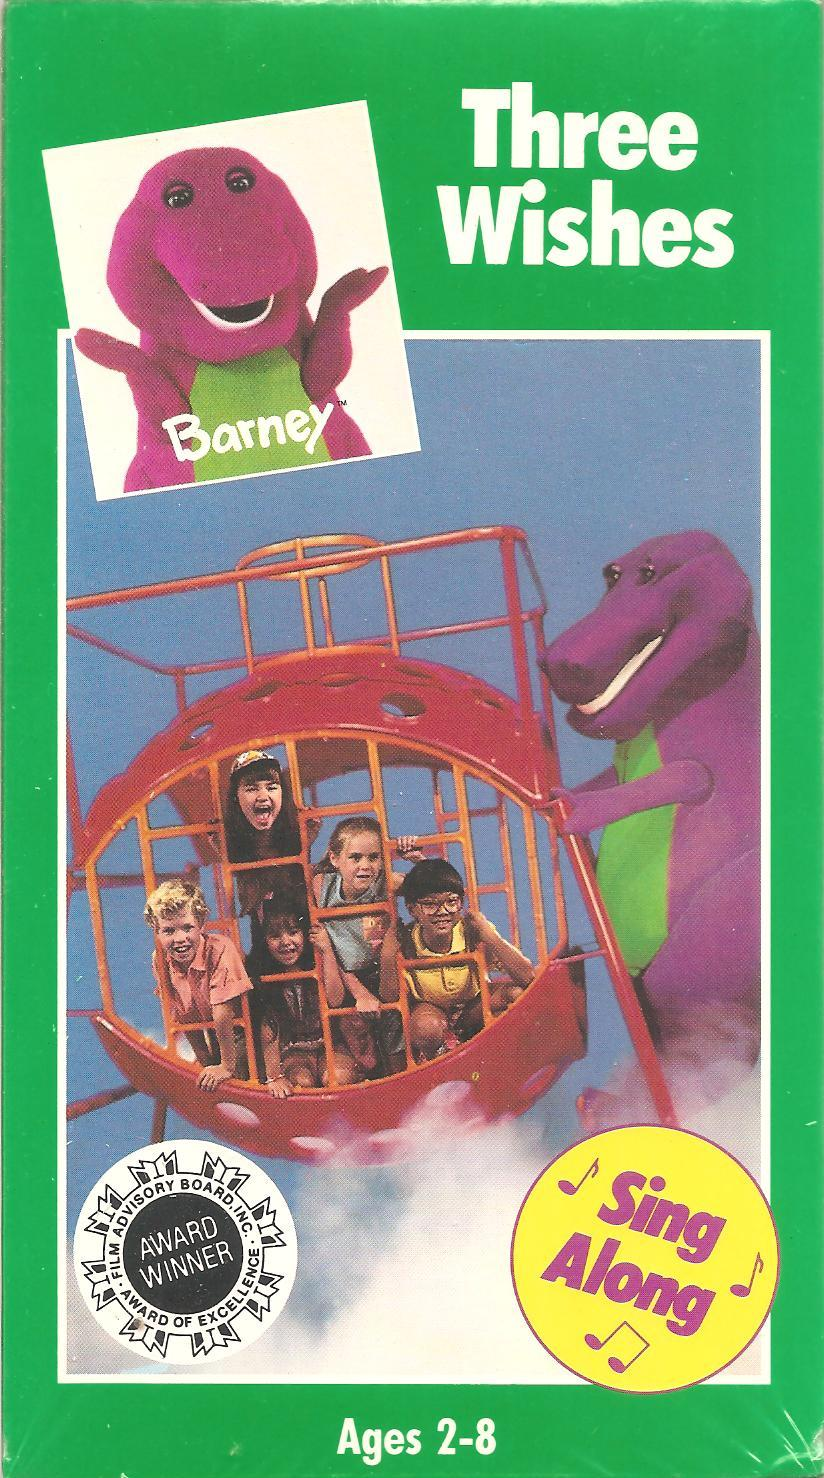 barney three wishes 1992 submited images